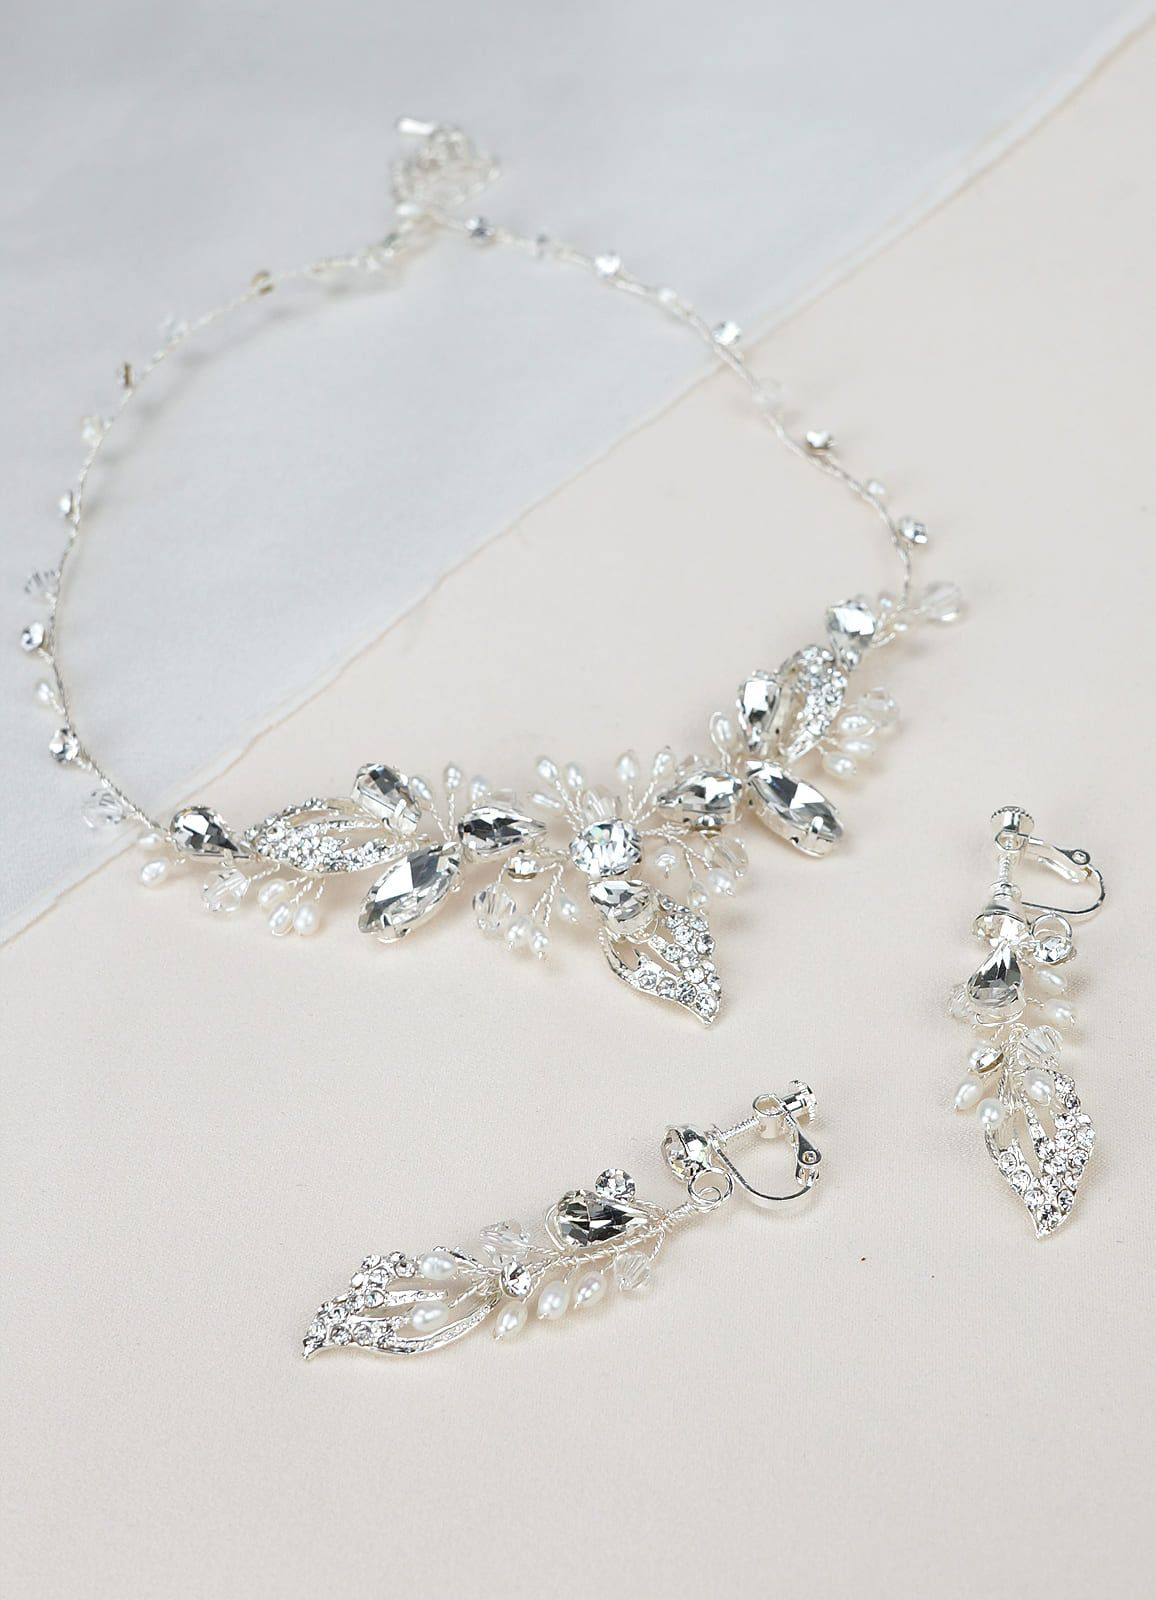 Afarose Spring Collection Jewelry In 2020 Wedding Accessories Cascade Necklace Featured Jewelry